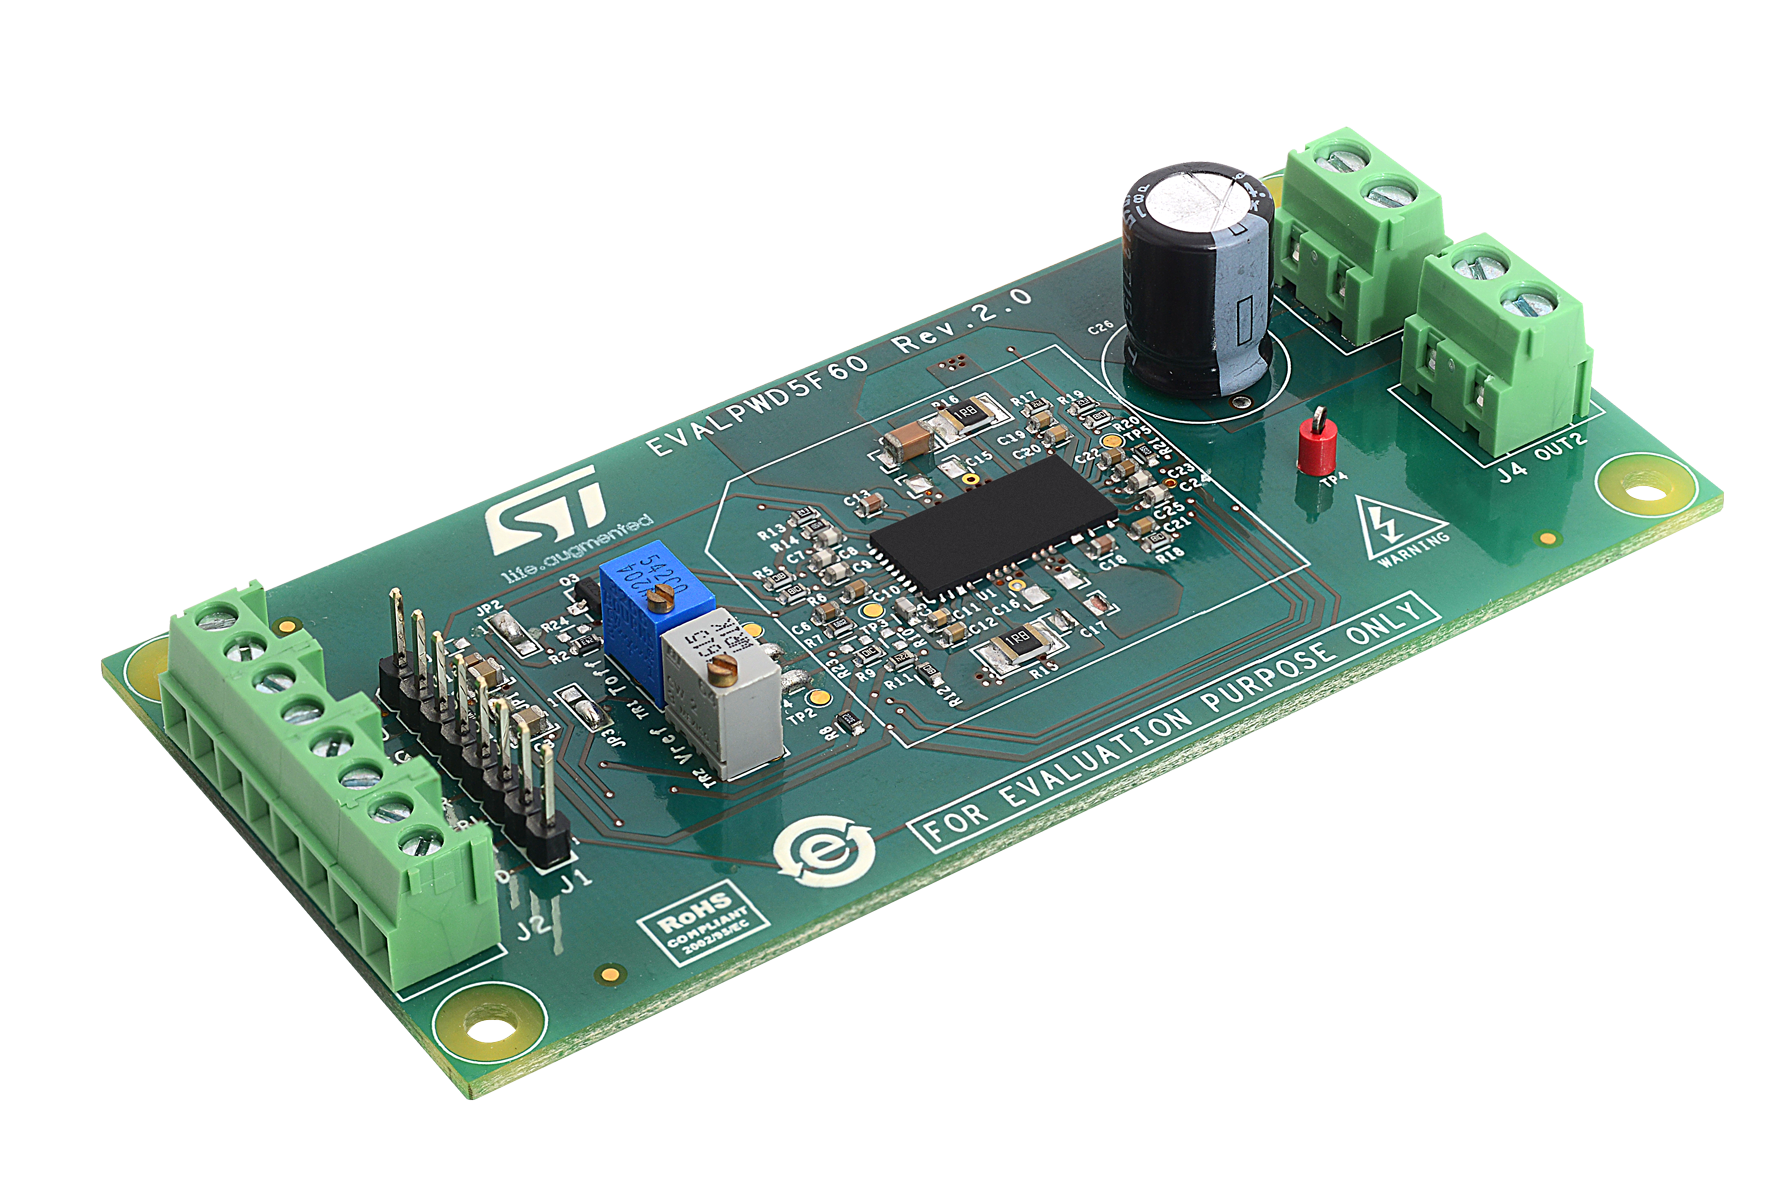 Demonstration board for PWD5F60 smart driver with integrated high voltage full bridge